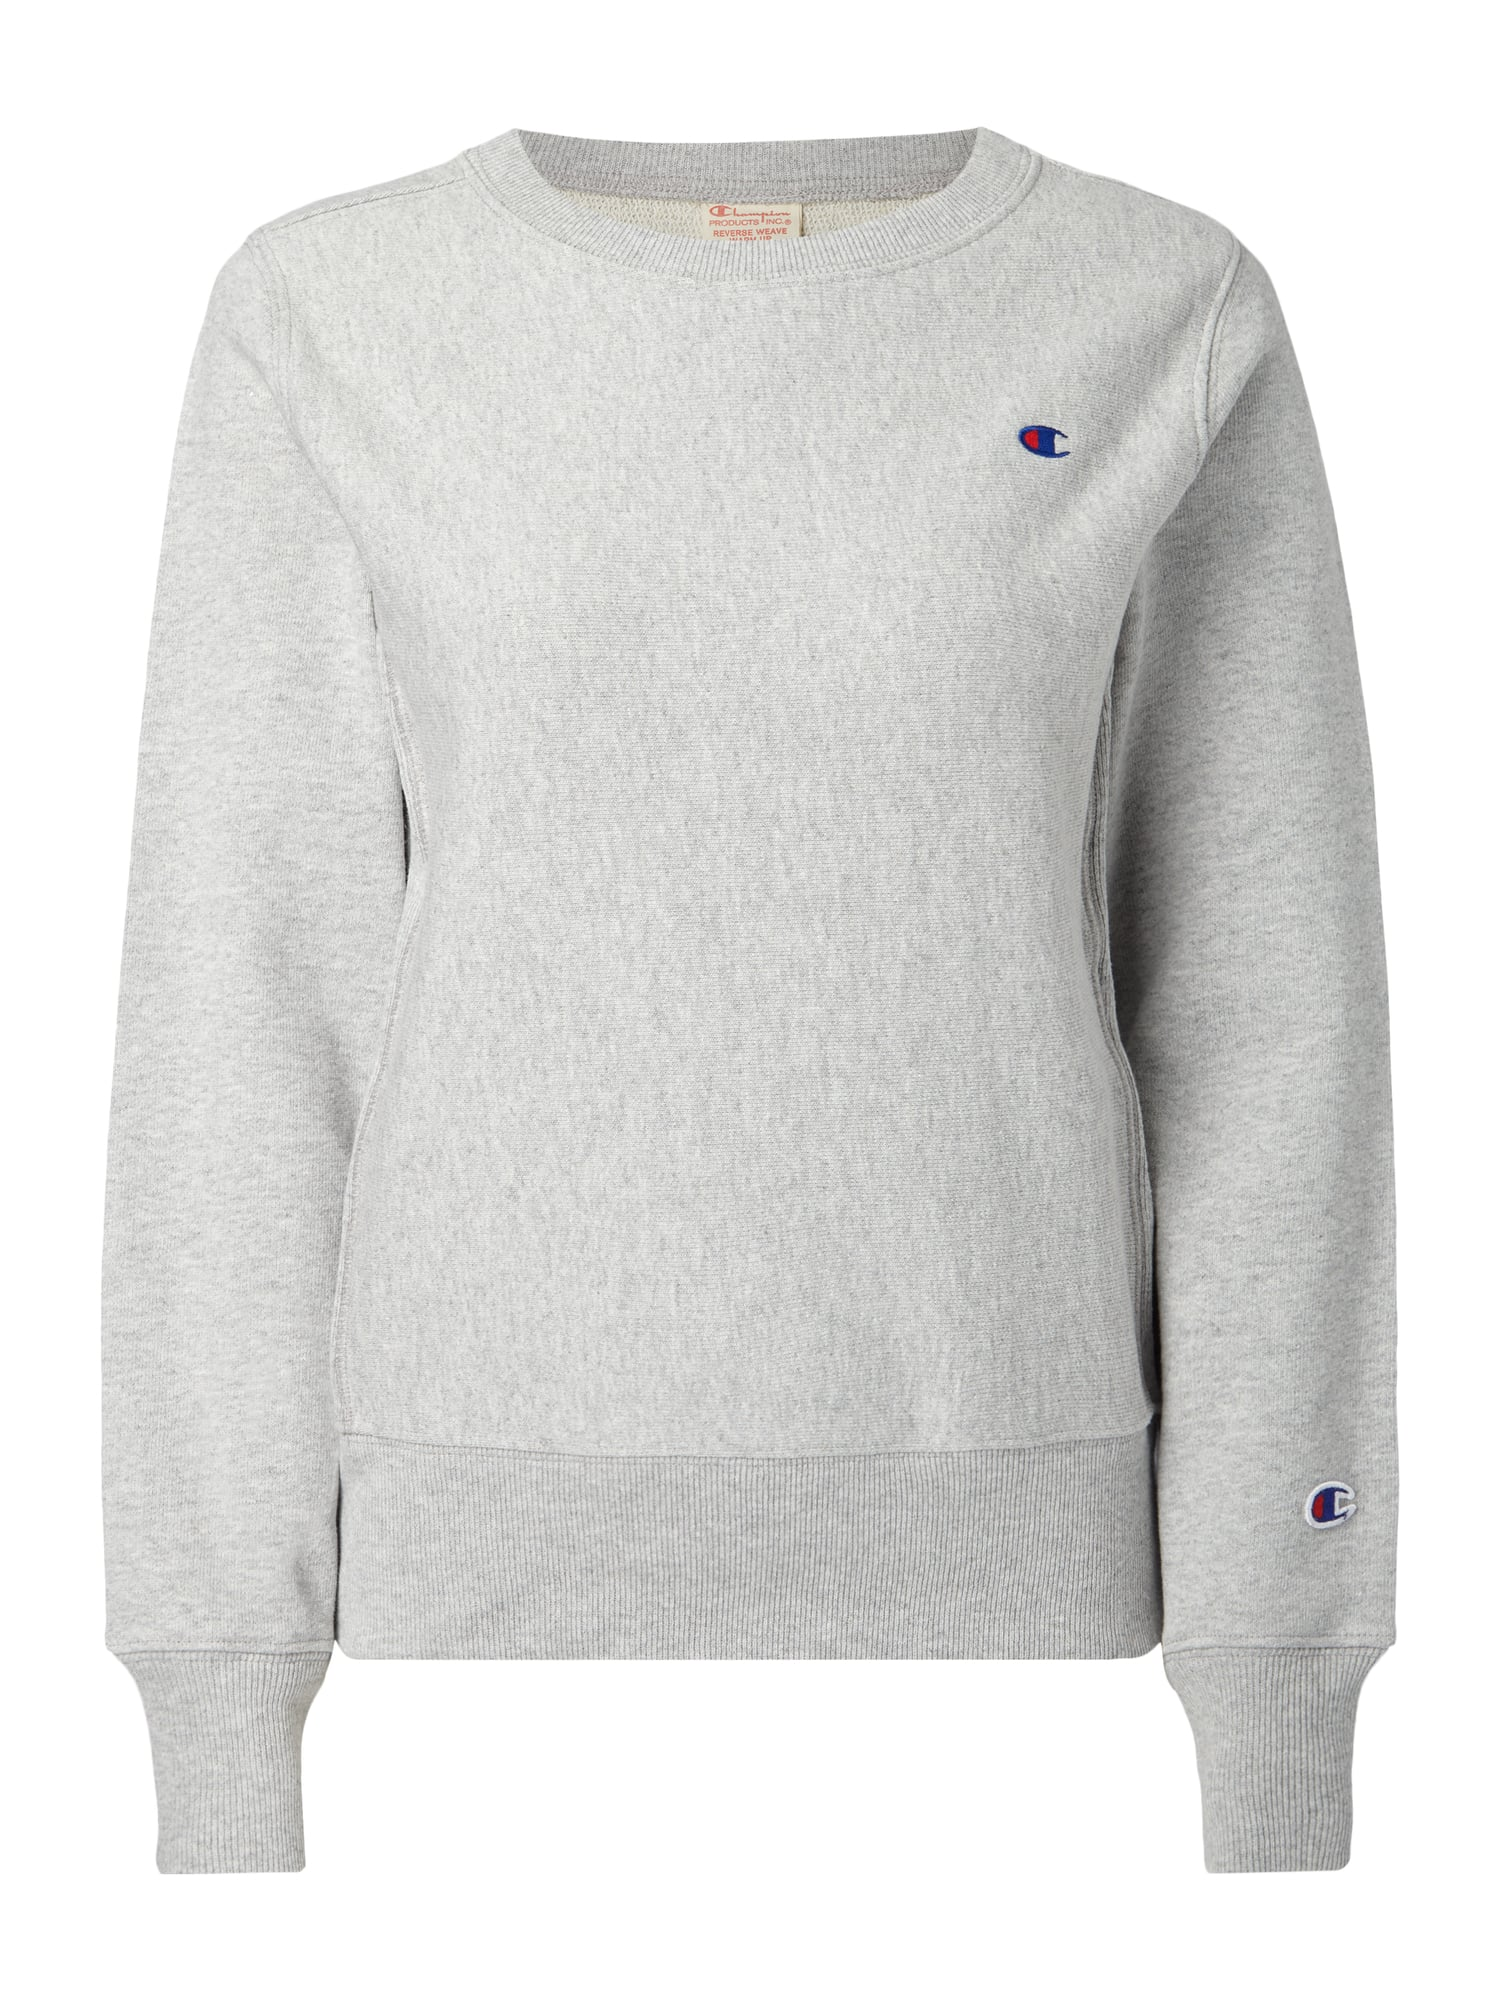 CHAMPION Sweatshirt mit Logo-Stickerei in Grau / Schwarz ...